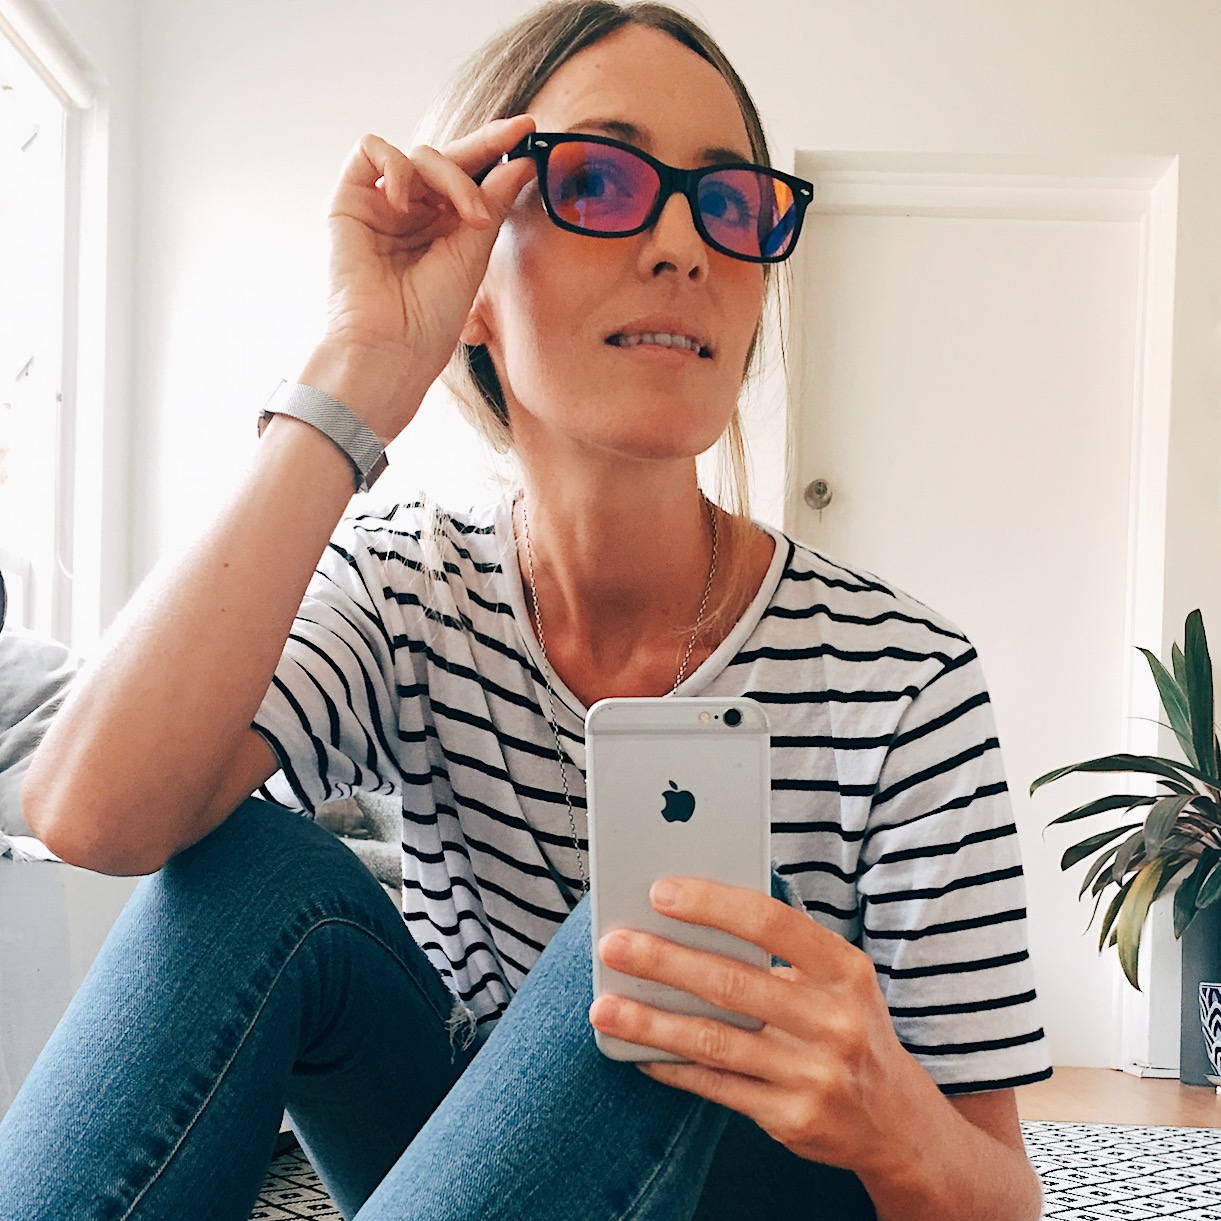 @stayinghealthywithms's cover photo for 'Blue light blocking glasses to encourage restful SLEEP'